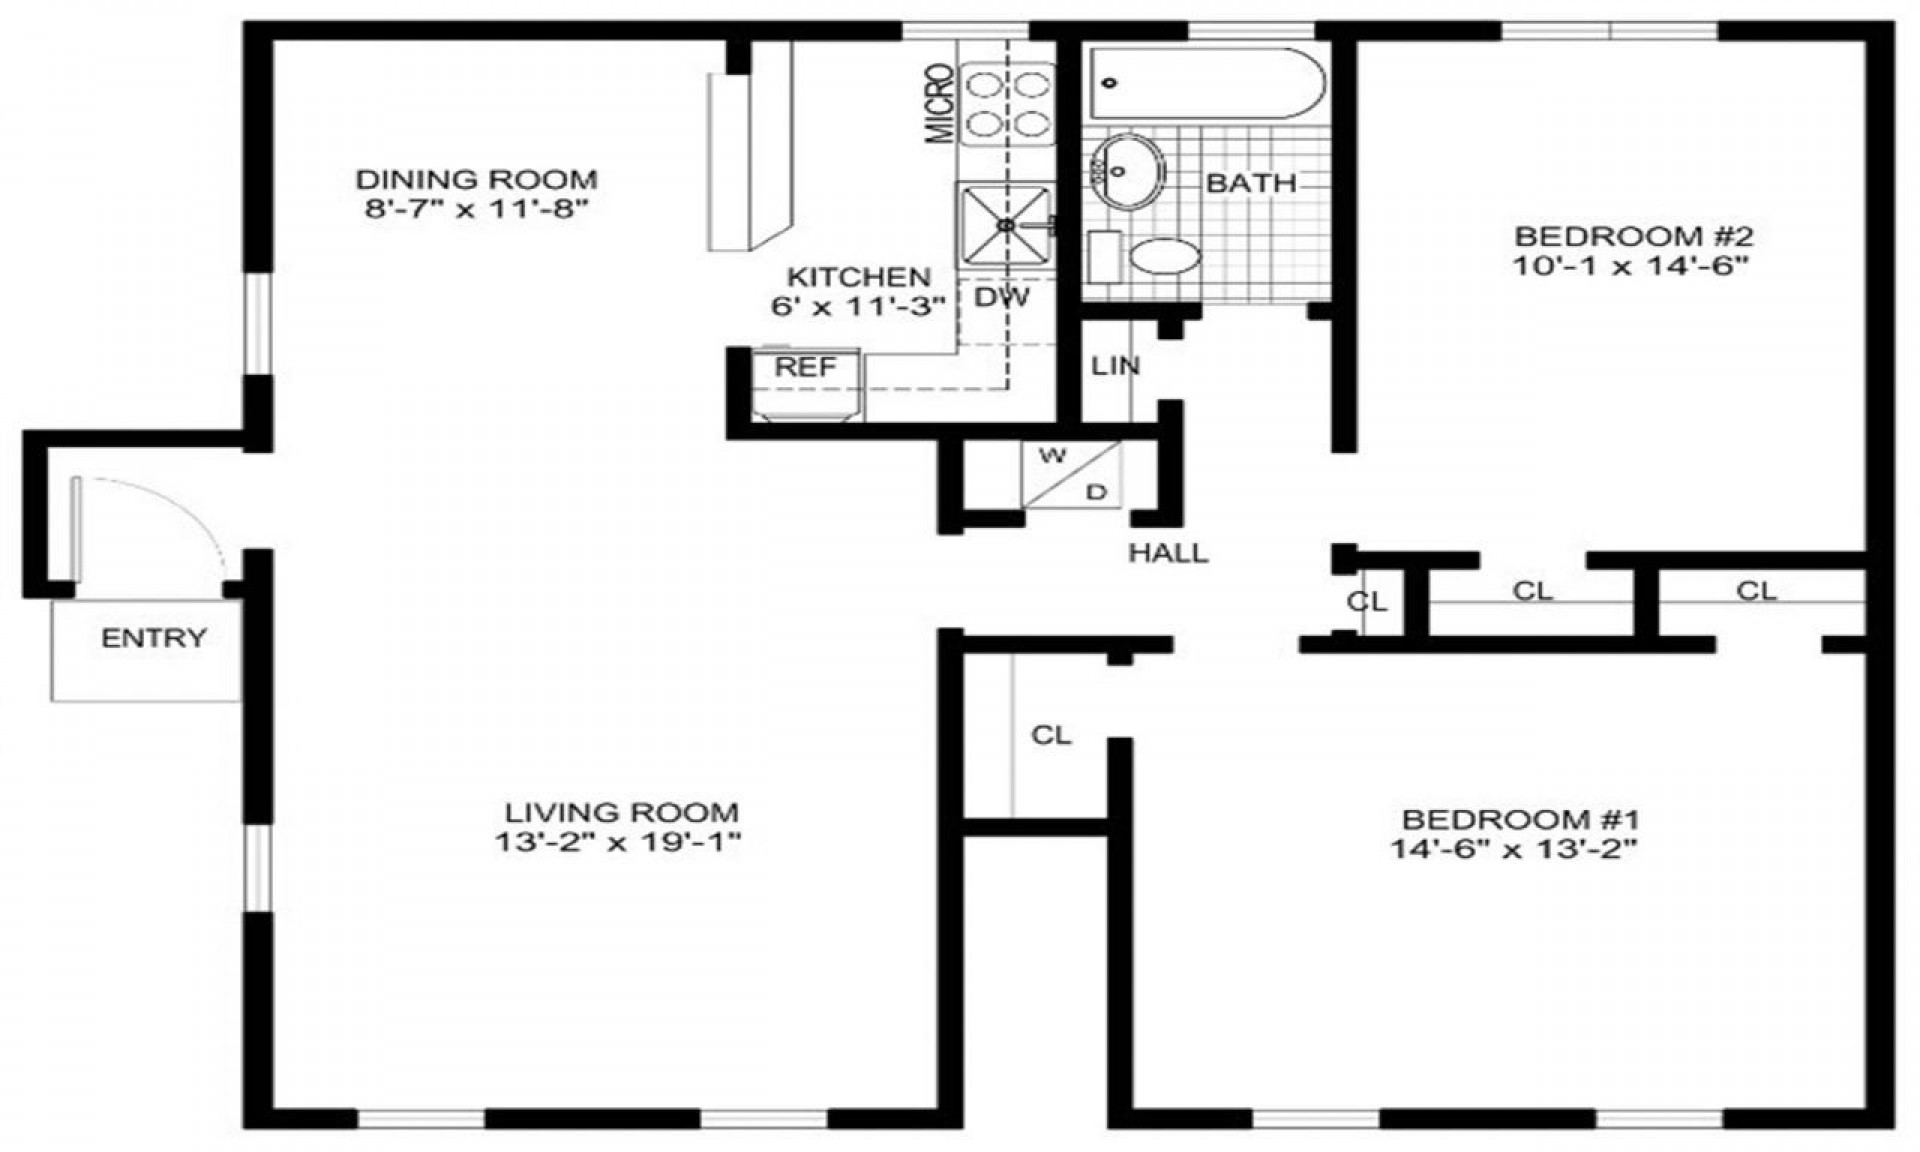 006 Incredible Free Floor Plan Template Example  Excel Home House Sample1920